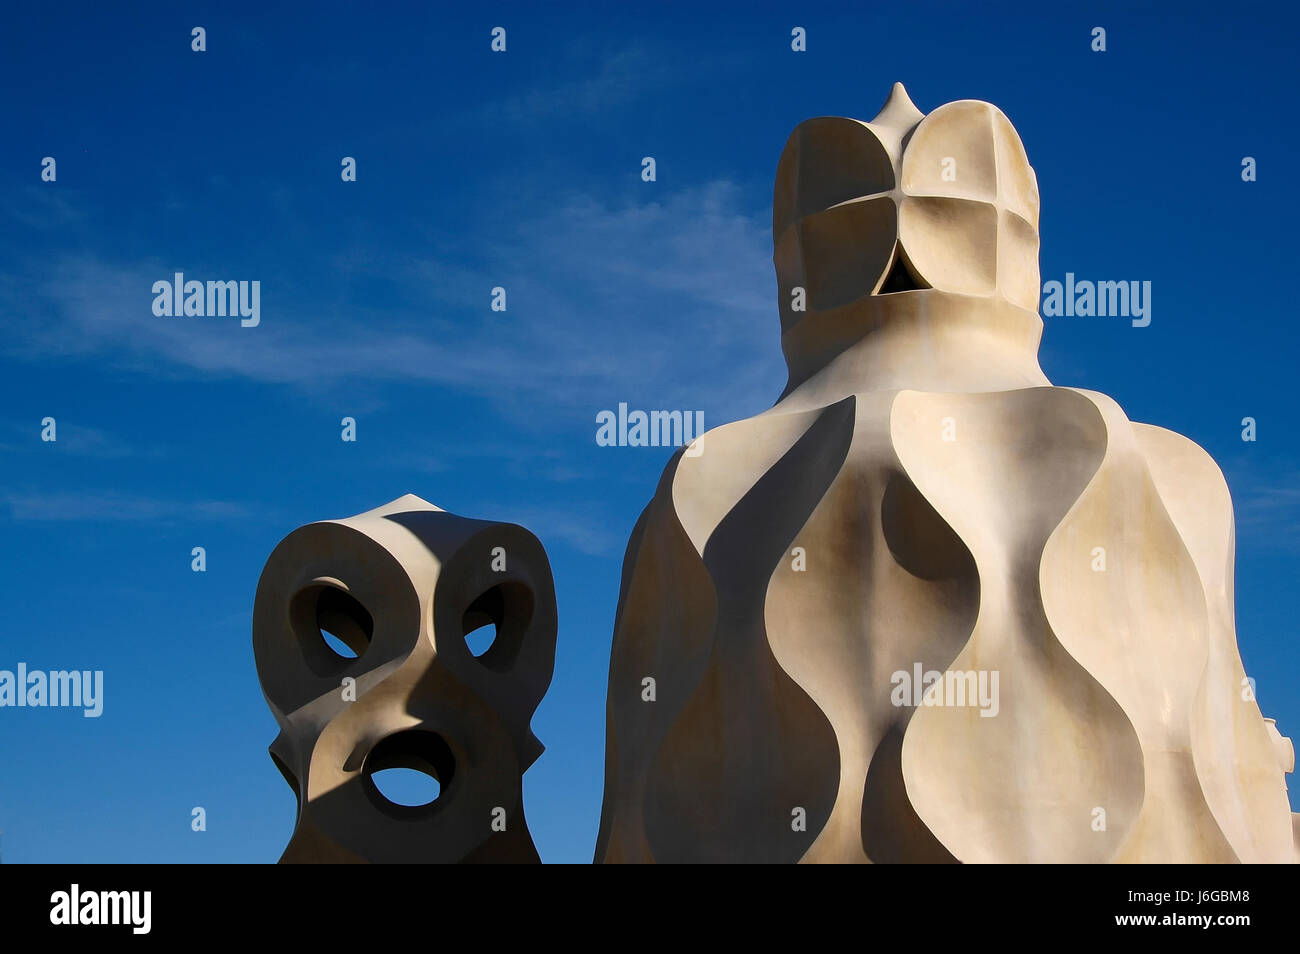 modernism catalan barcelona house building travel architectural art famous - Stock Image